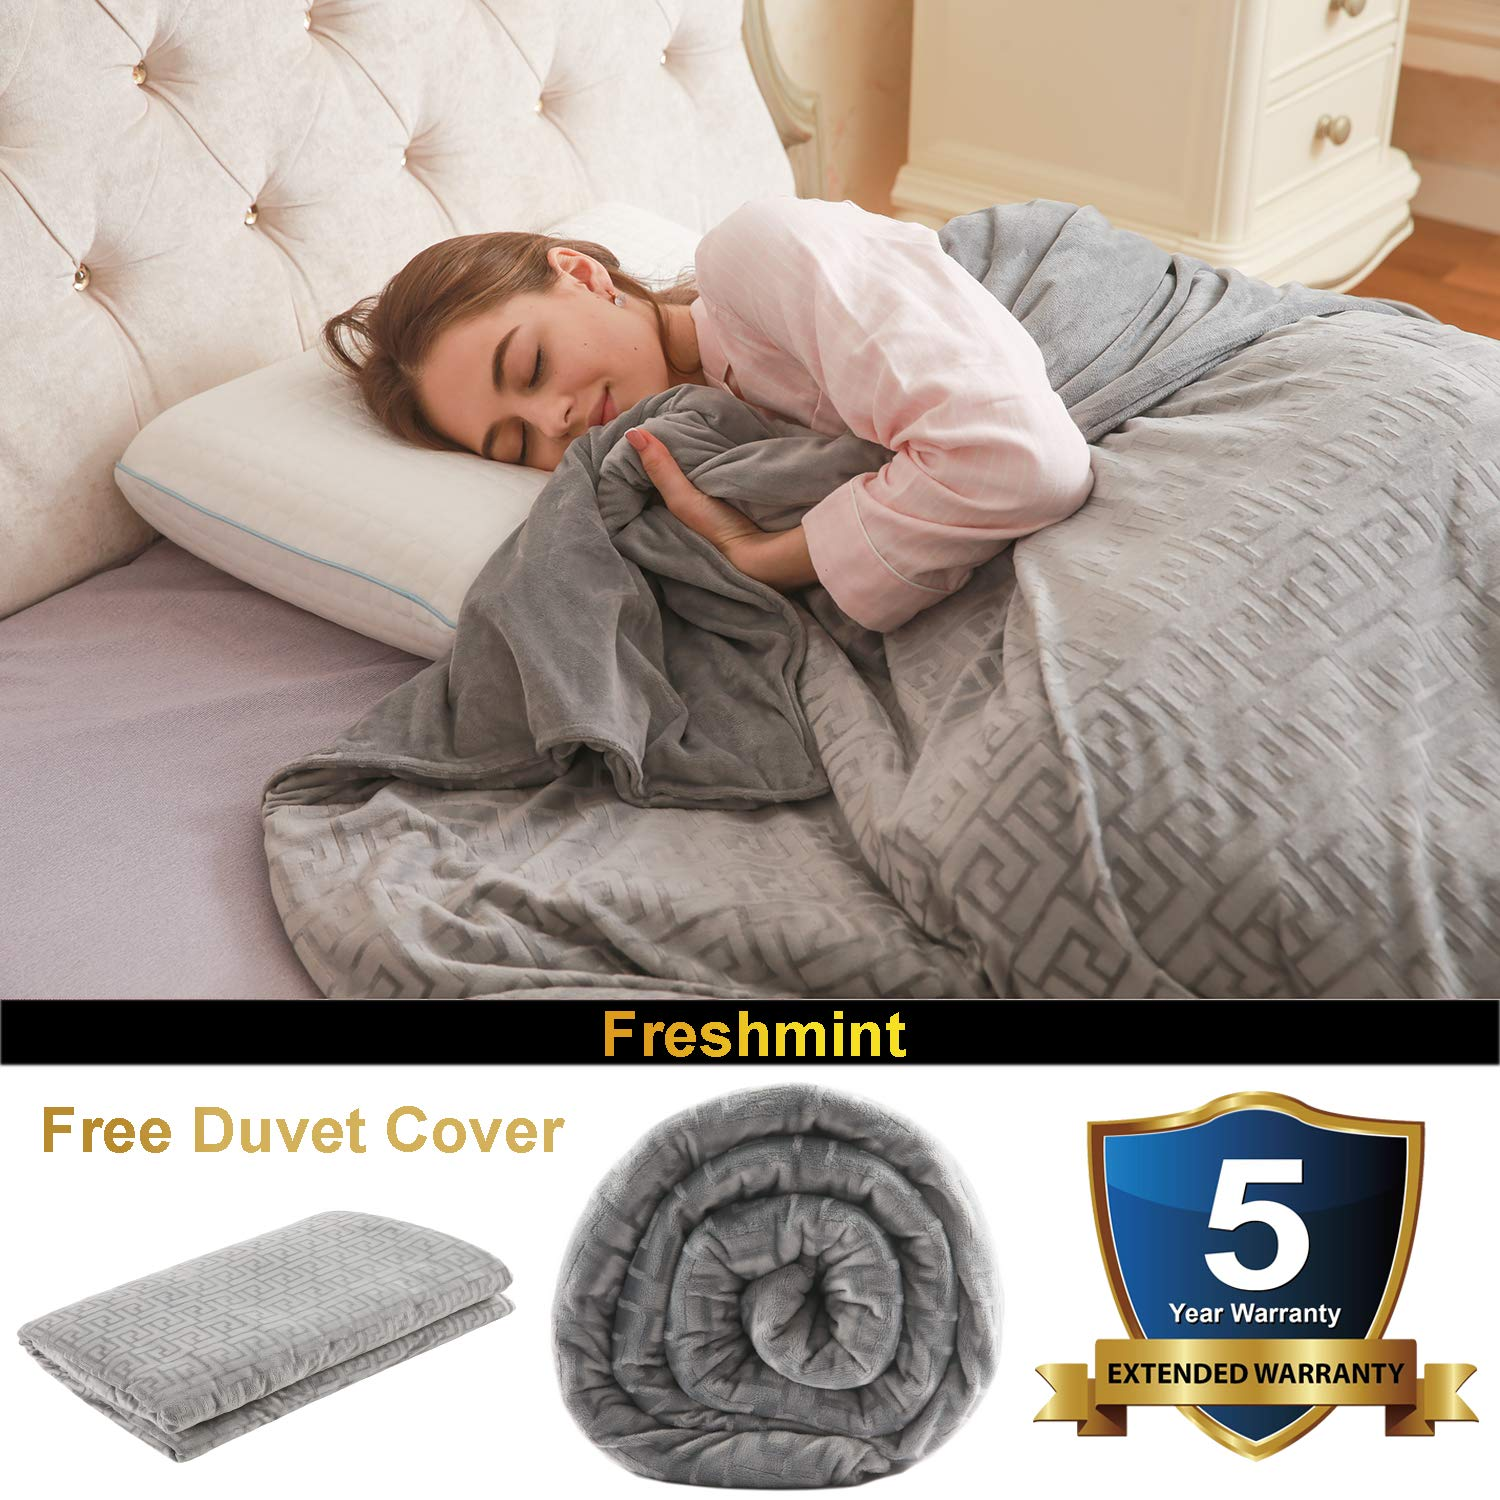 Freshmint Weighted Blankets (15 lbs, 48''x72'') Heavy Blanket W/Removable Duvet Cover | for Kids/Adult Between 140-180 lbs | Twin/Full Sized Bed | Premium Glass Beads | Gray